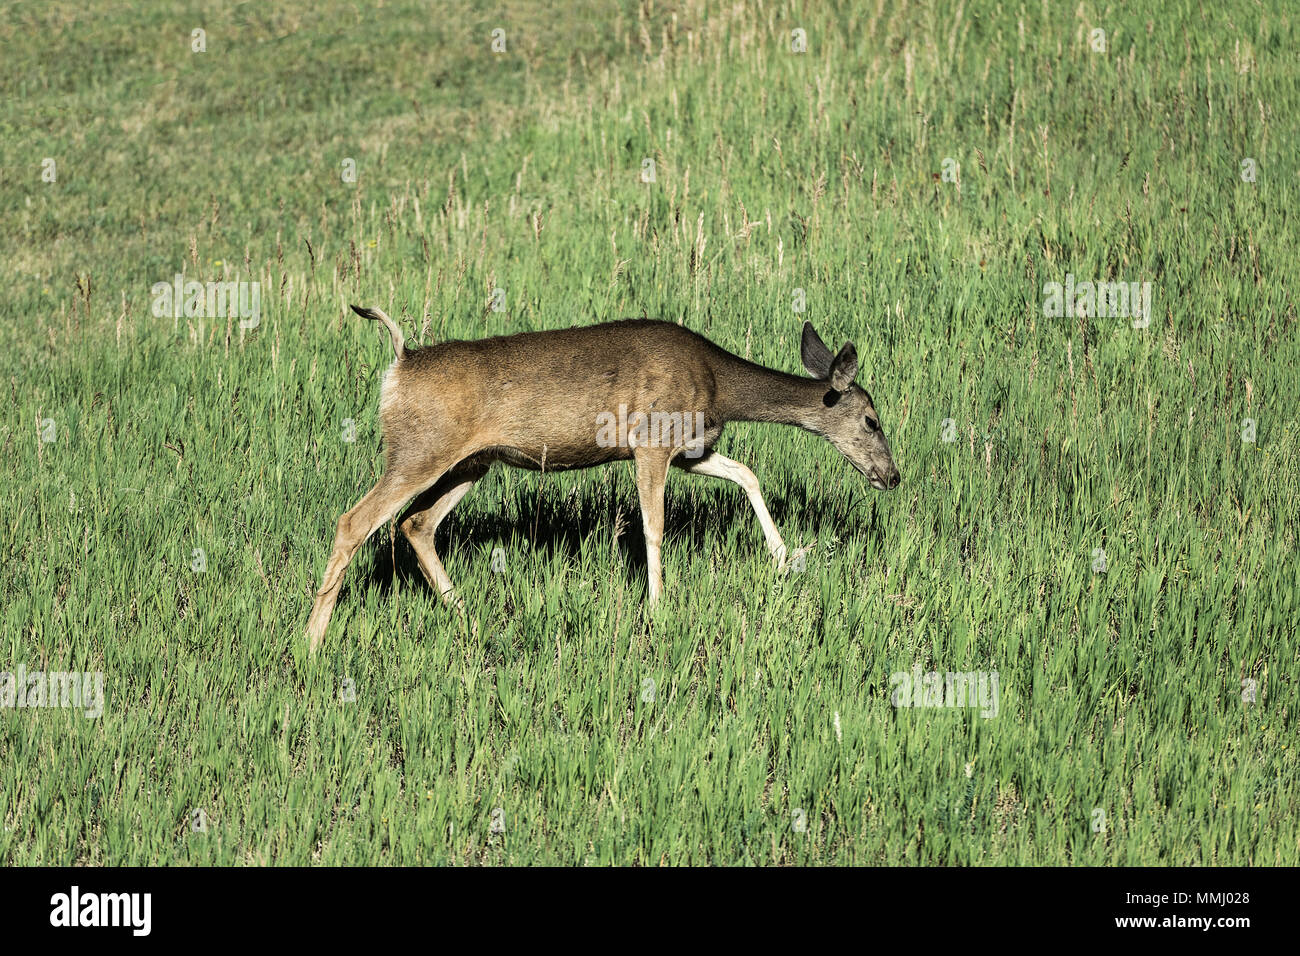 Lone deer foraging for food, Golden, Colorado, USA - Stock Image